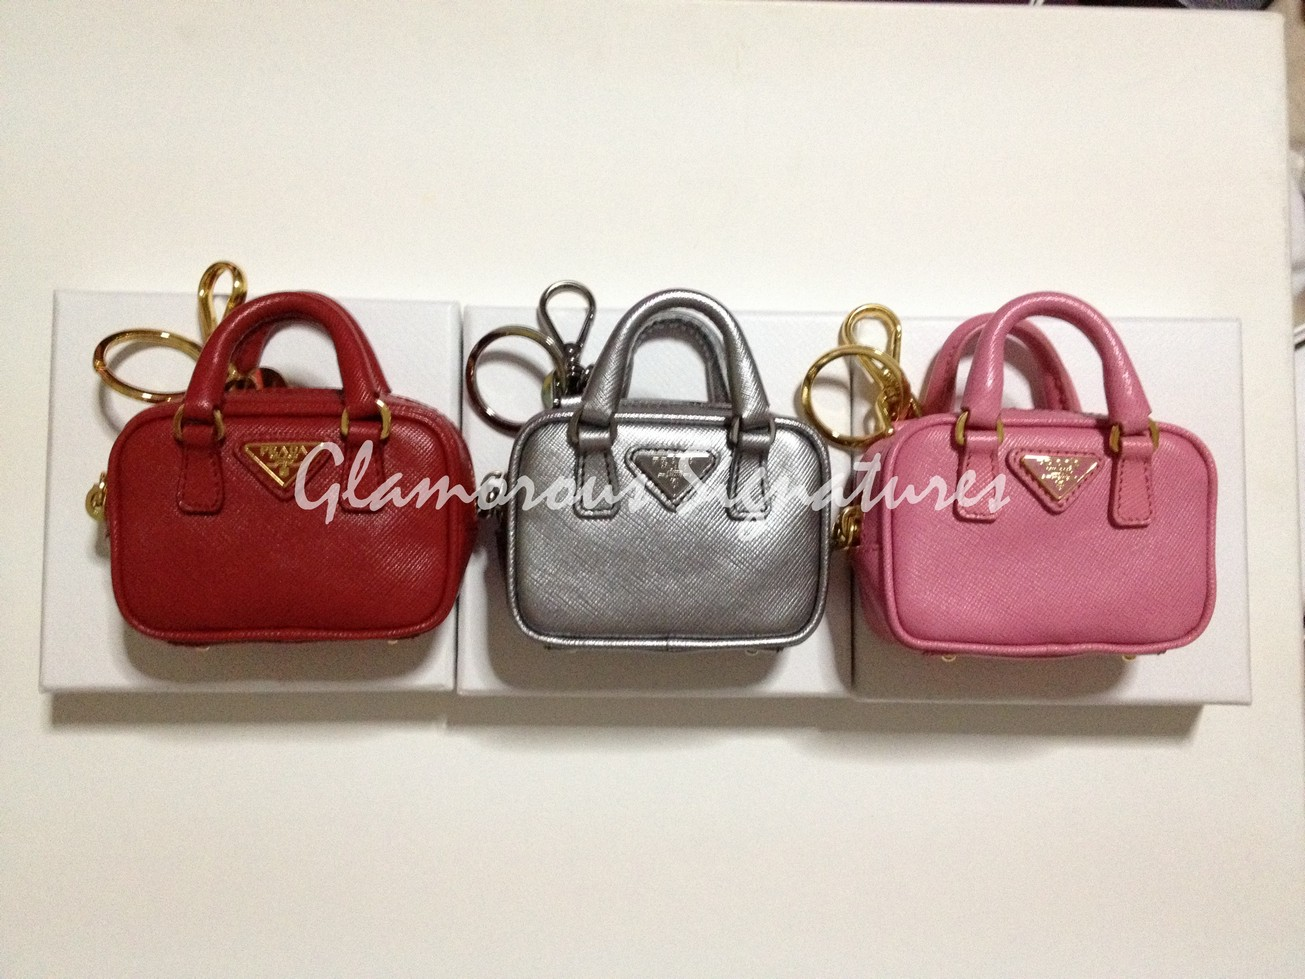 prada handbag charms